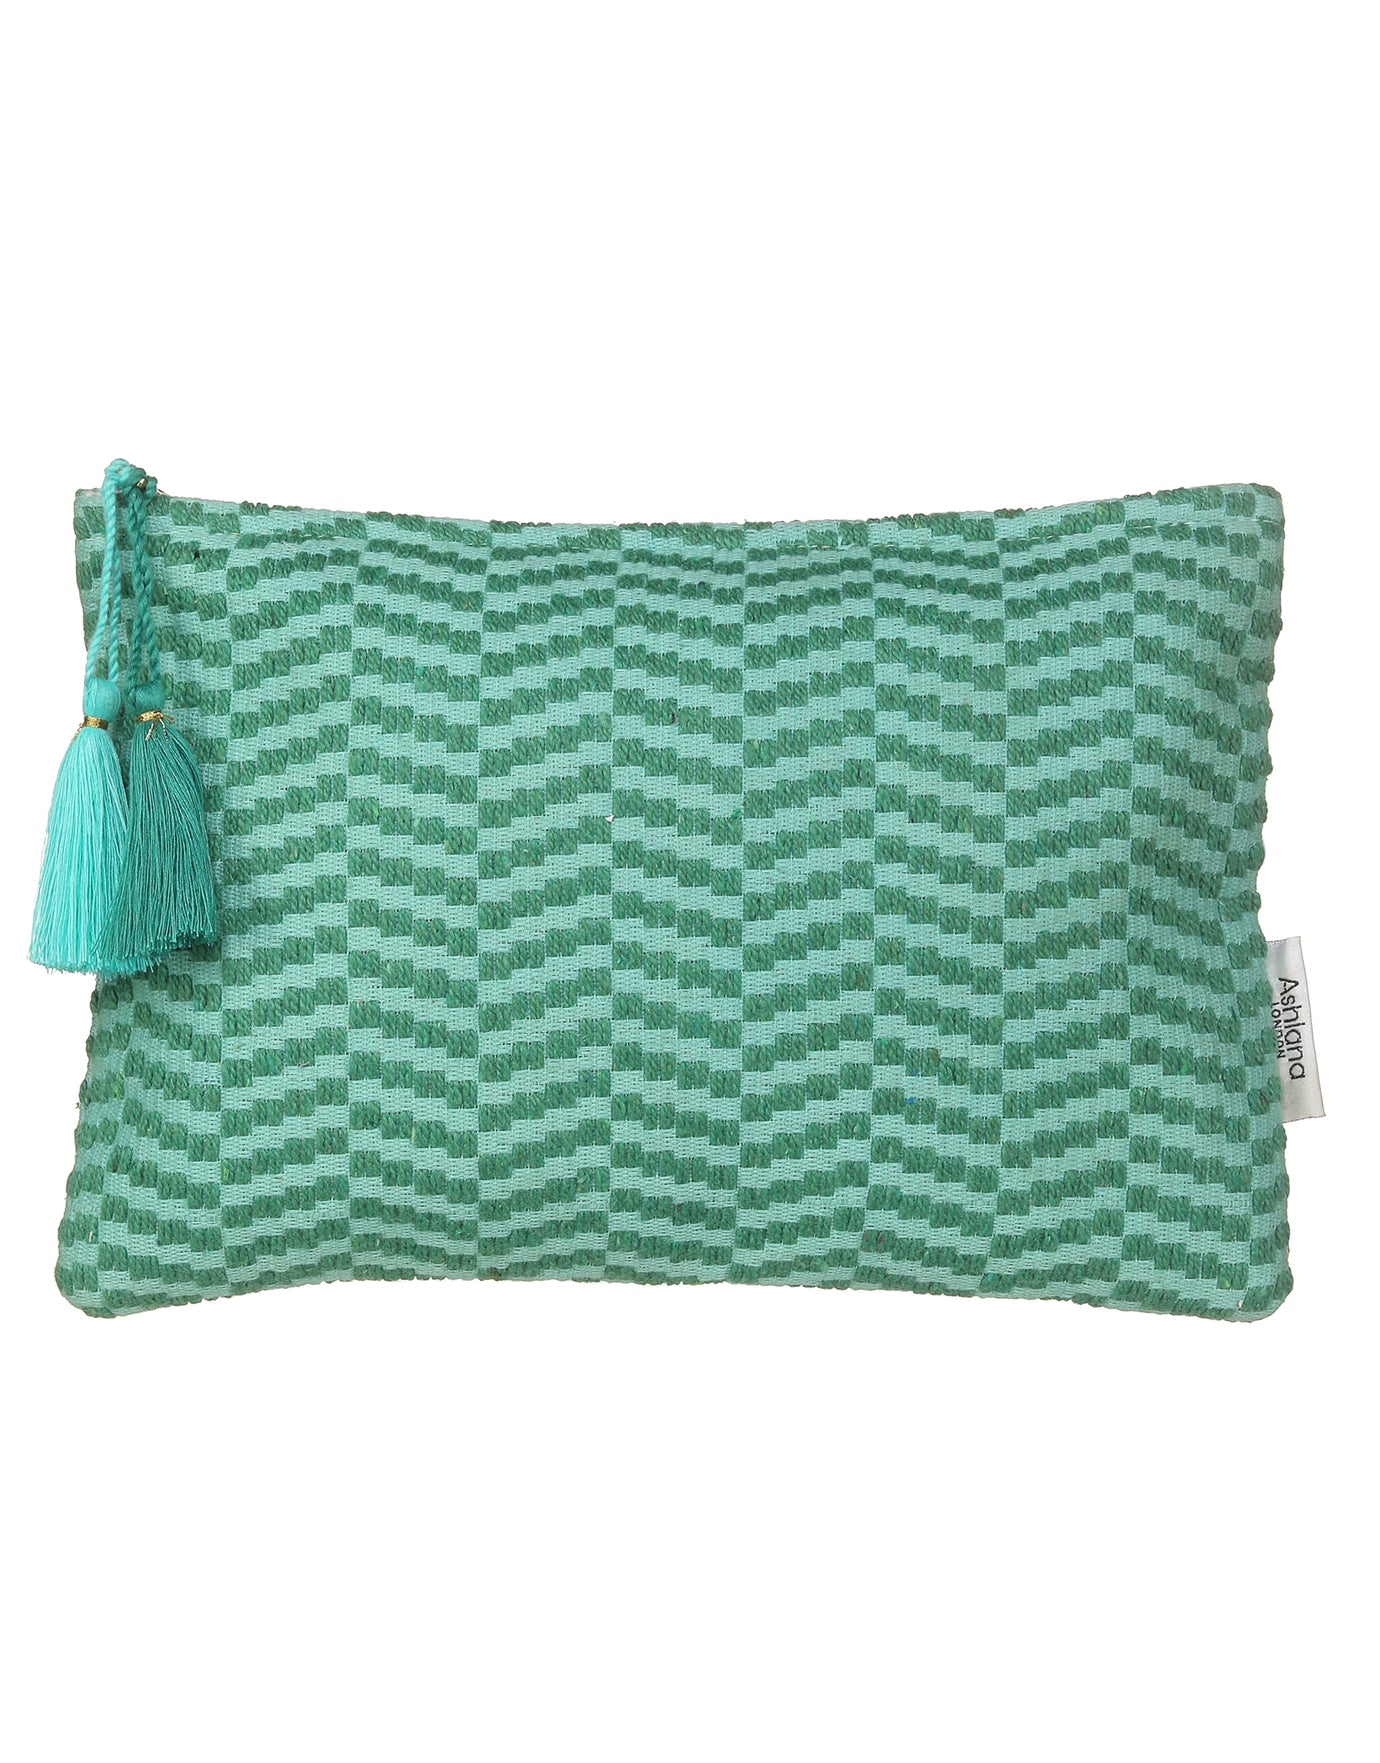 Ashiana Mini Miami Pouch - Green